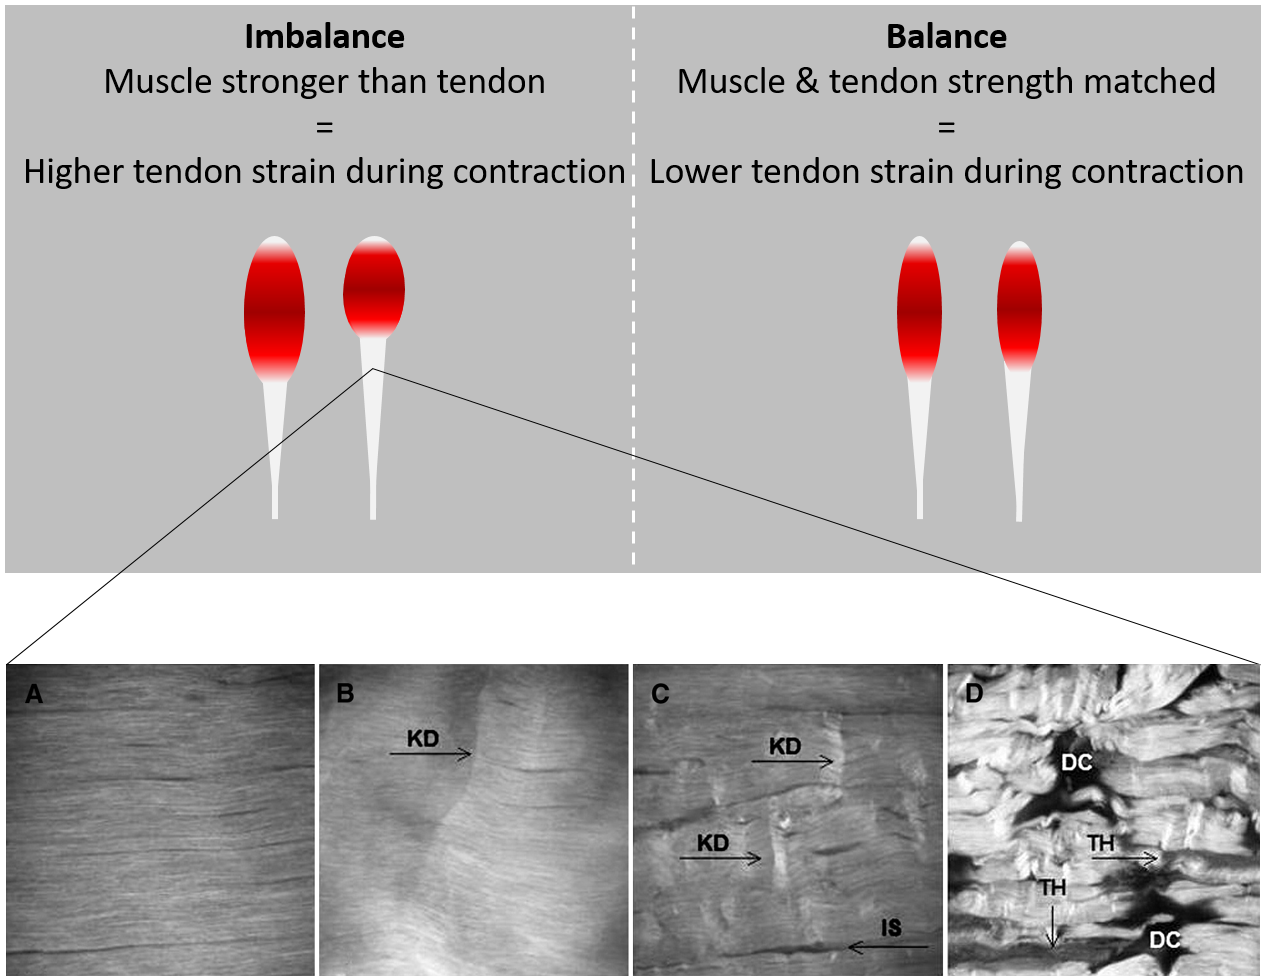 Imbalances in muscle and tendon strength and the relation